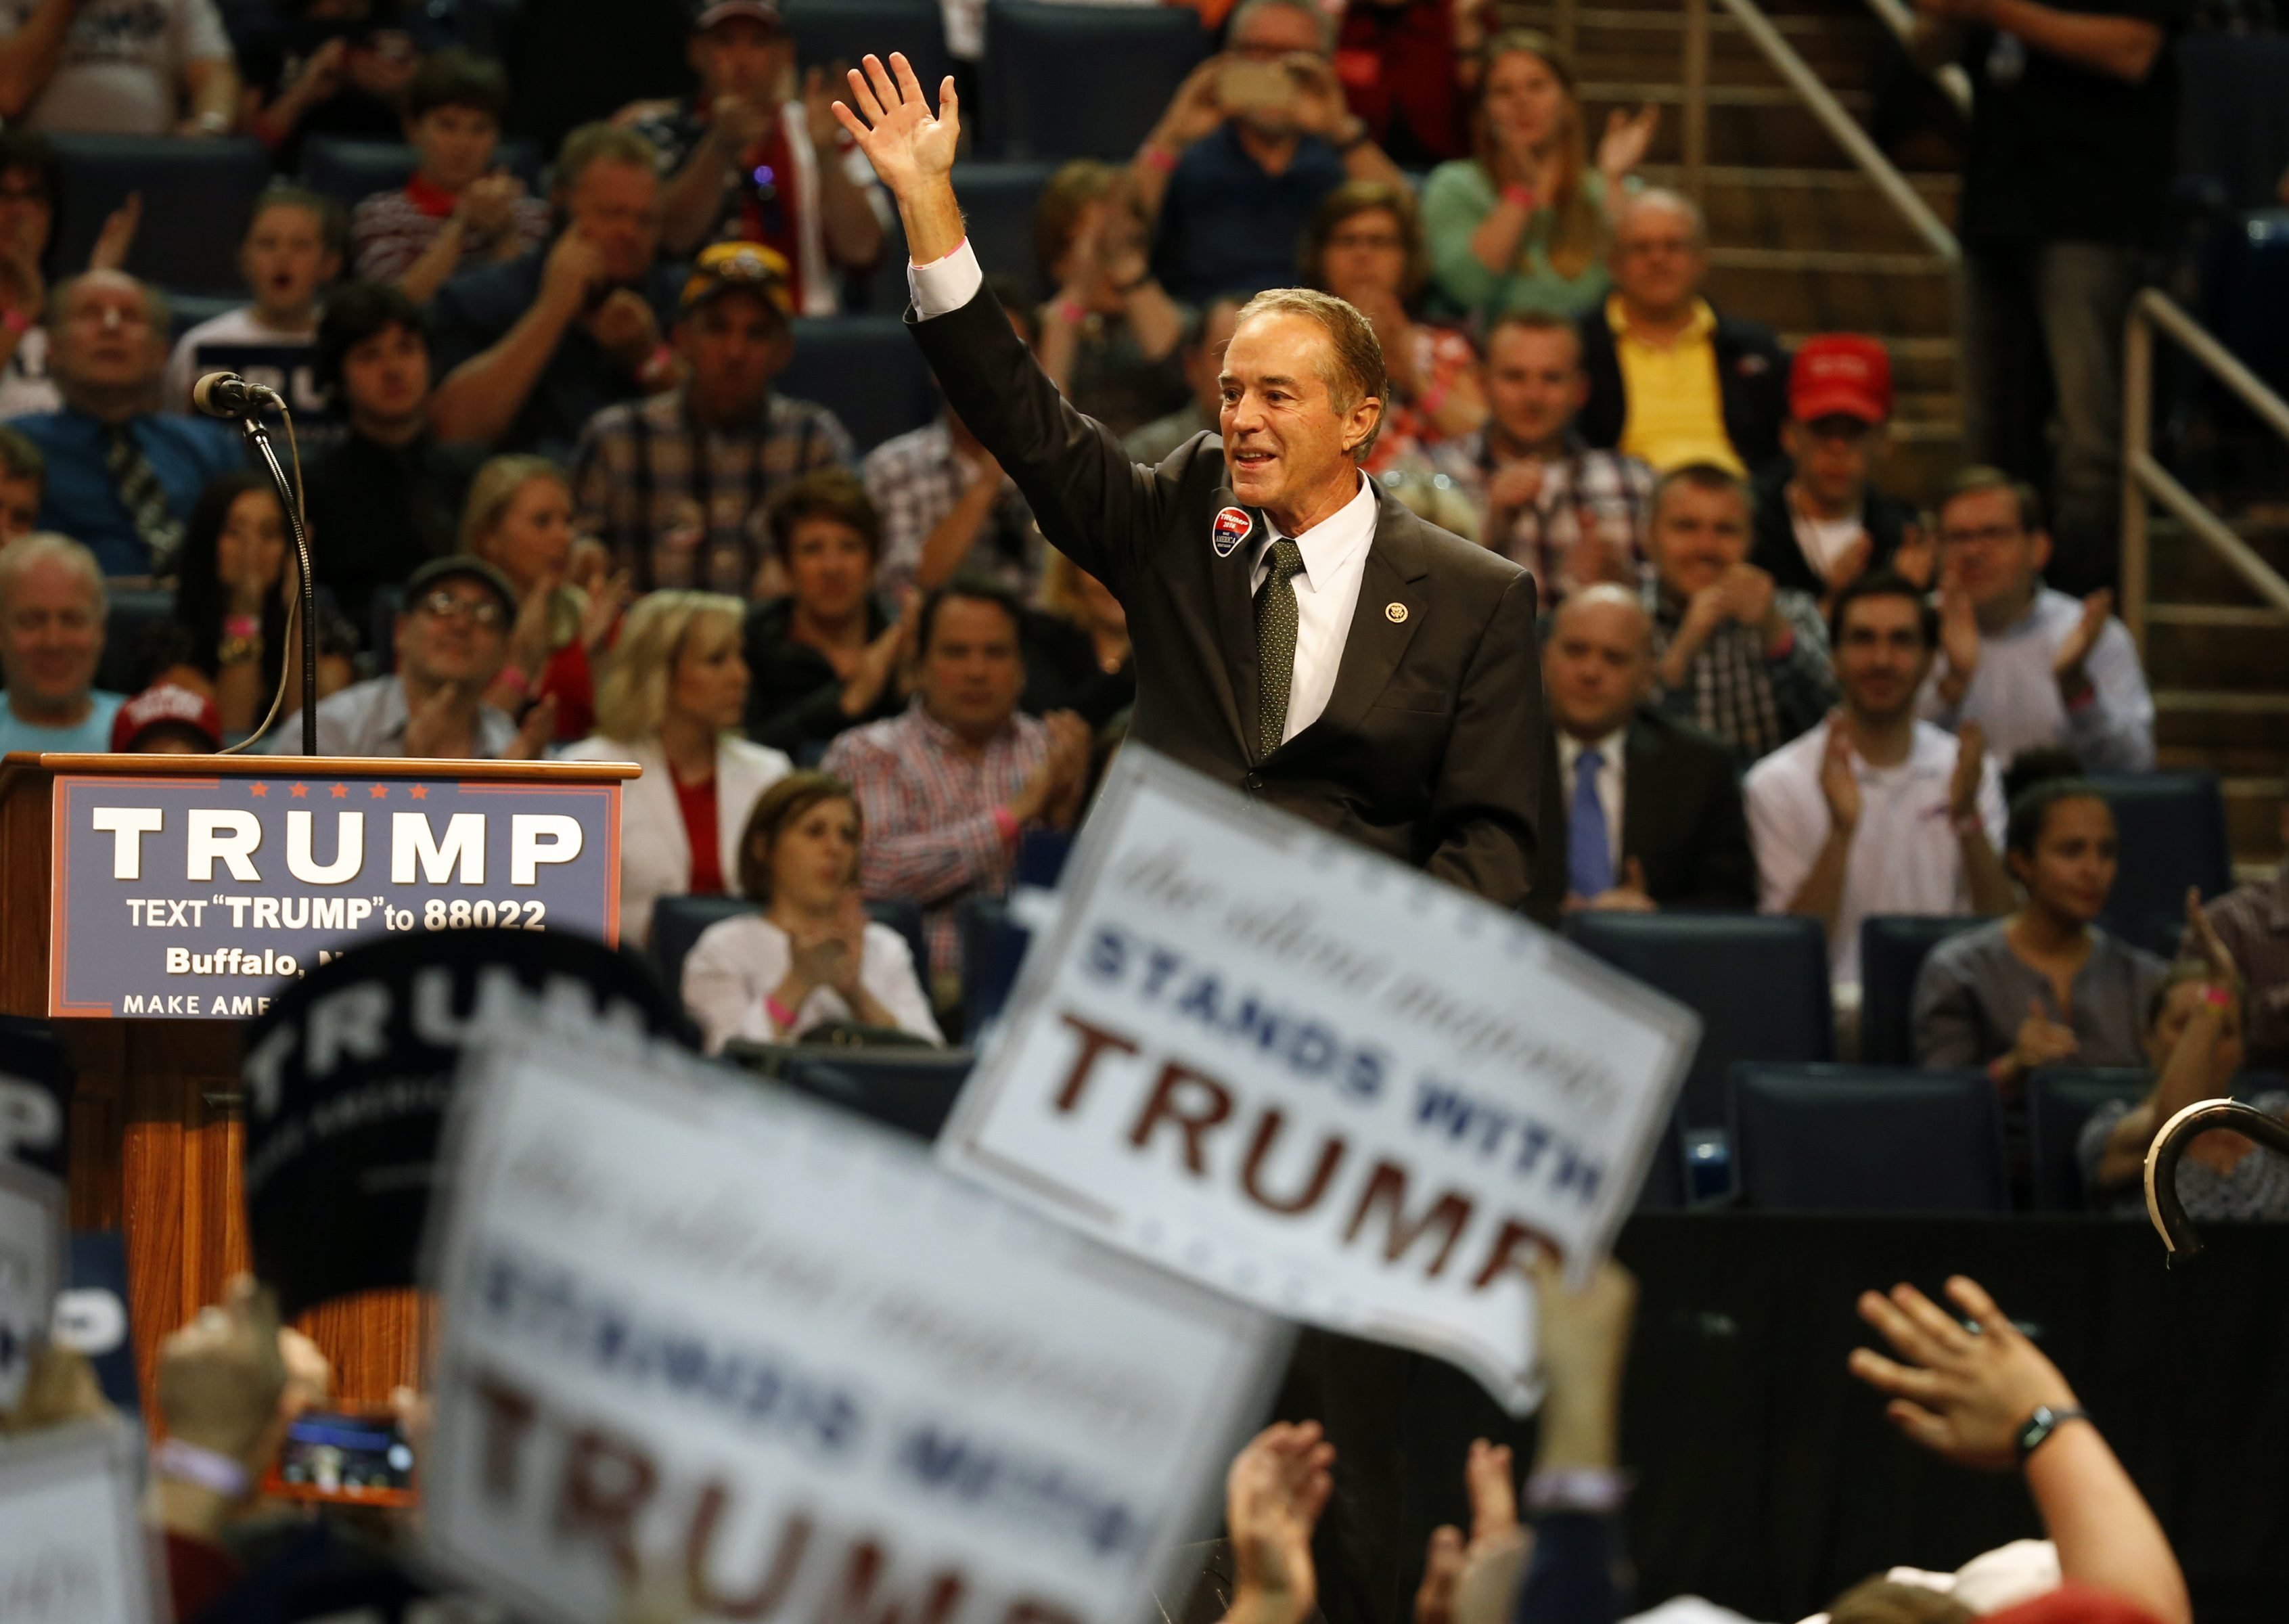 Congressman Chris Collins waves and speaks to the crowd gathered for Republican presidential candidate Donald Trump at the First Niagara Center on Monday, April 18, 2016. (Harry Scull Jr./Buffalo News)